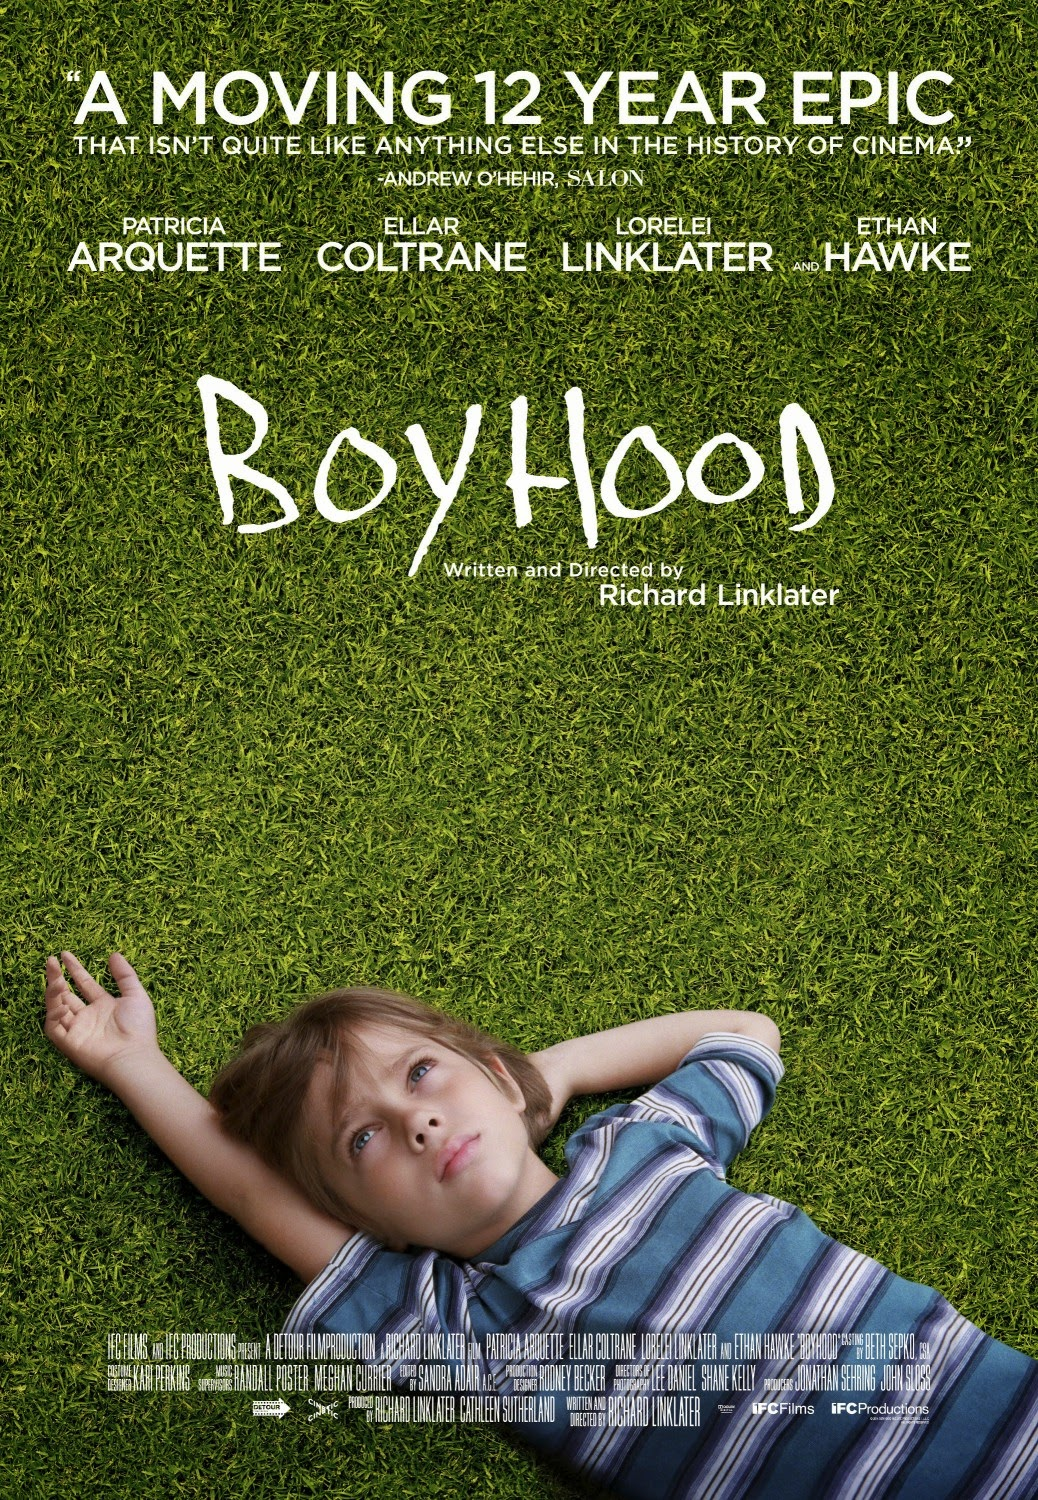 Boyhood Richard Linklater film poster